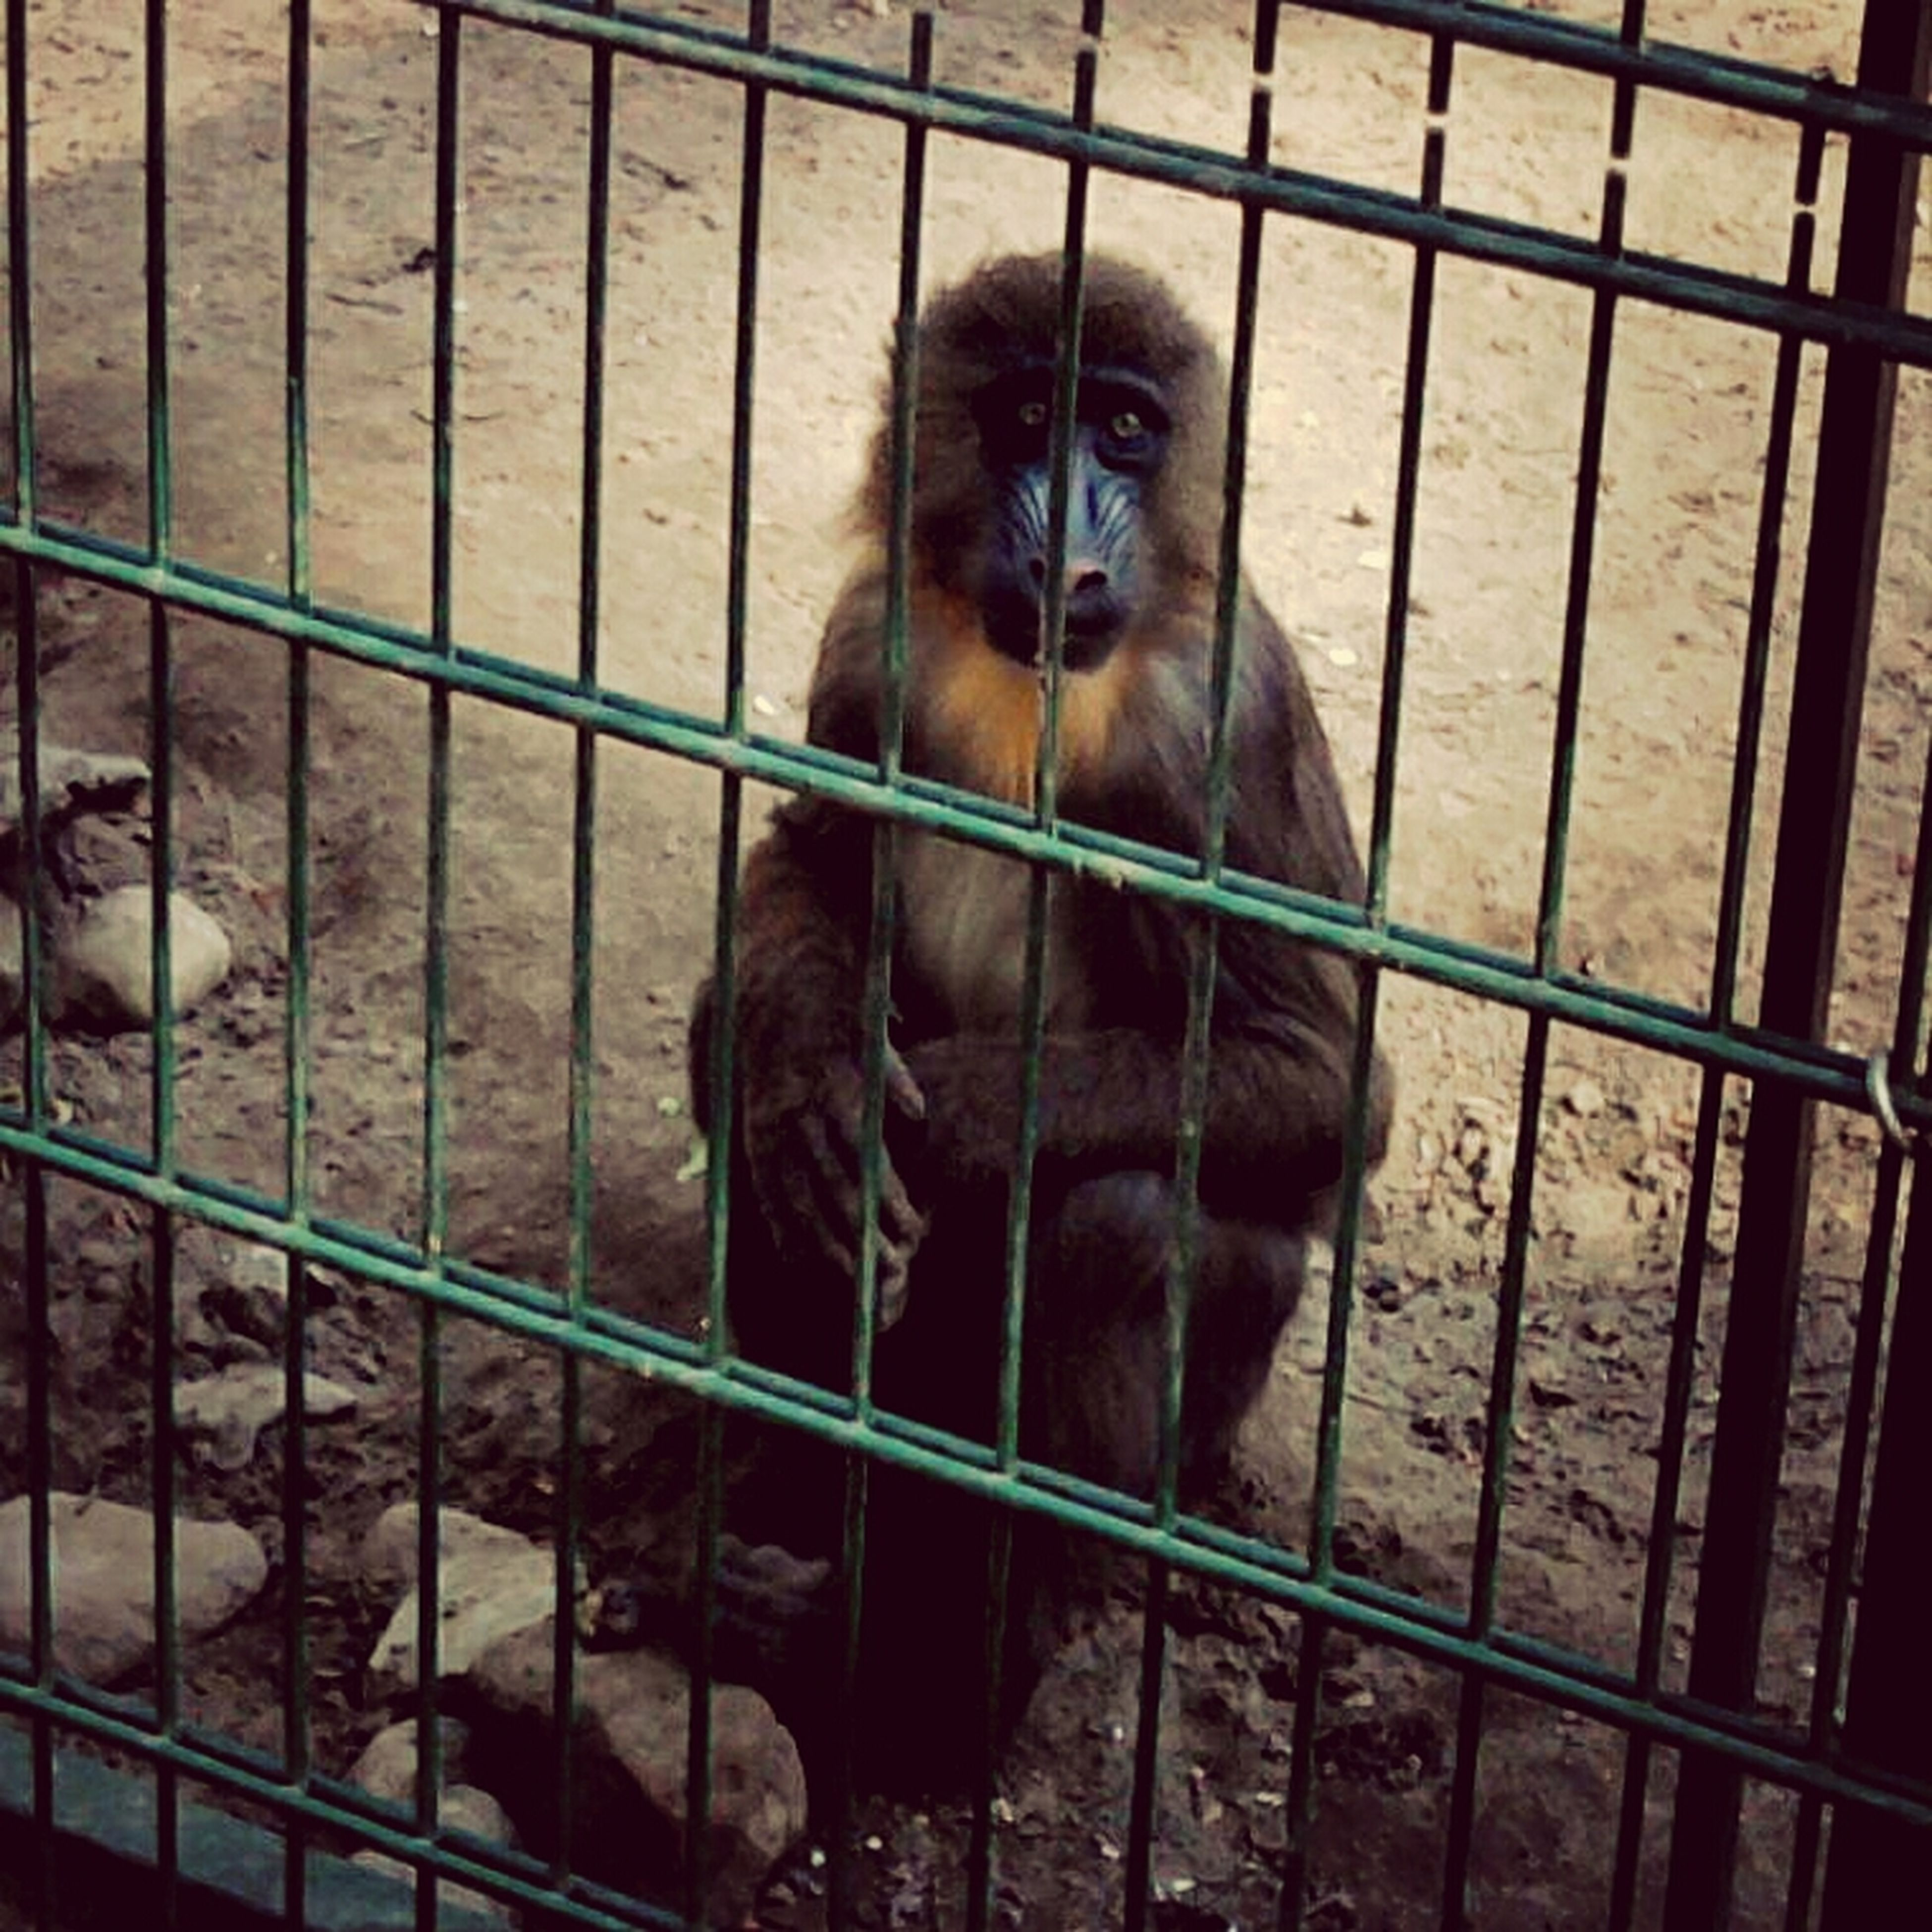 animal themes, mammal, one animal, domestic animals, animals in captivity, fence, monkey, pets, looking at camera, wildlife, portrait, sitting, cage, dog, metal, indoors, animals in the wild, zoology, day, zoo